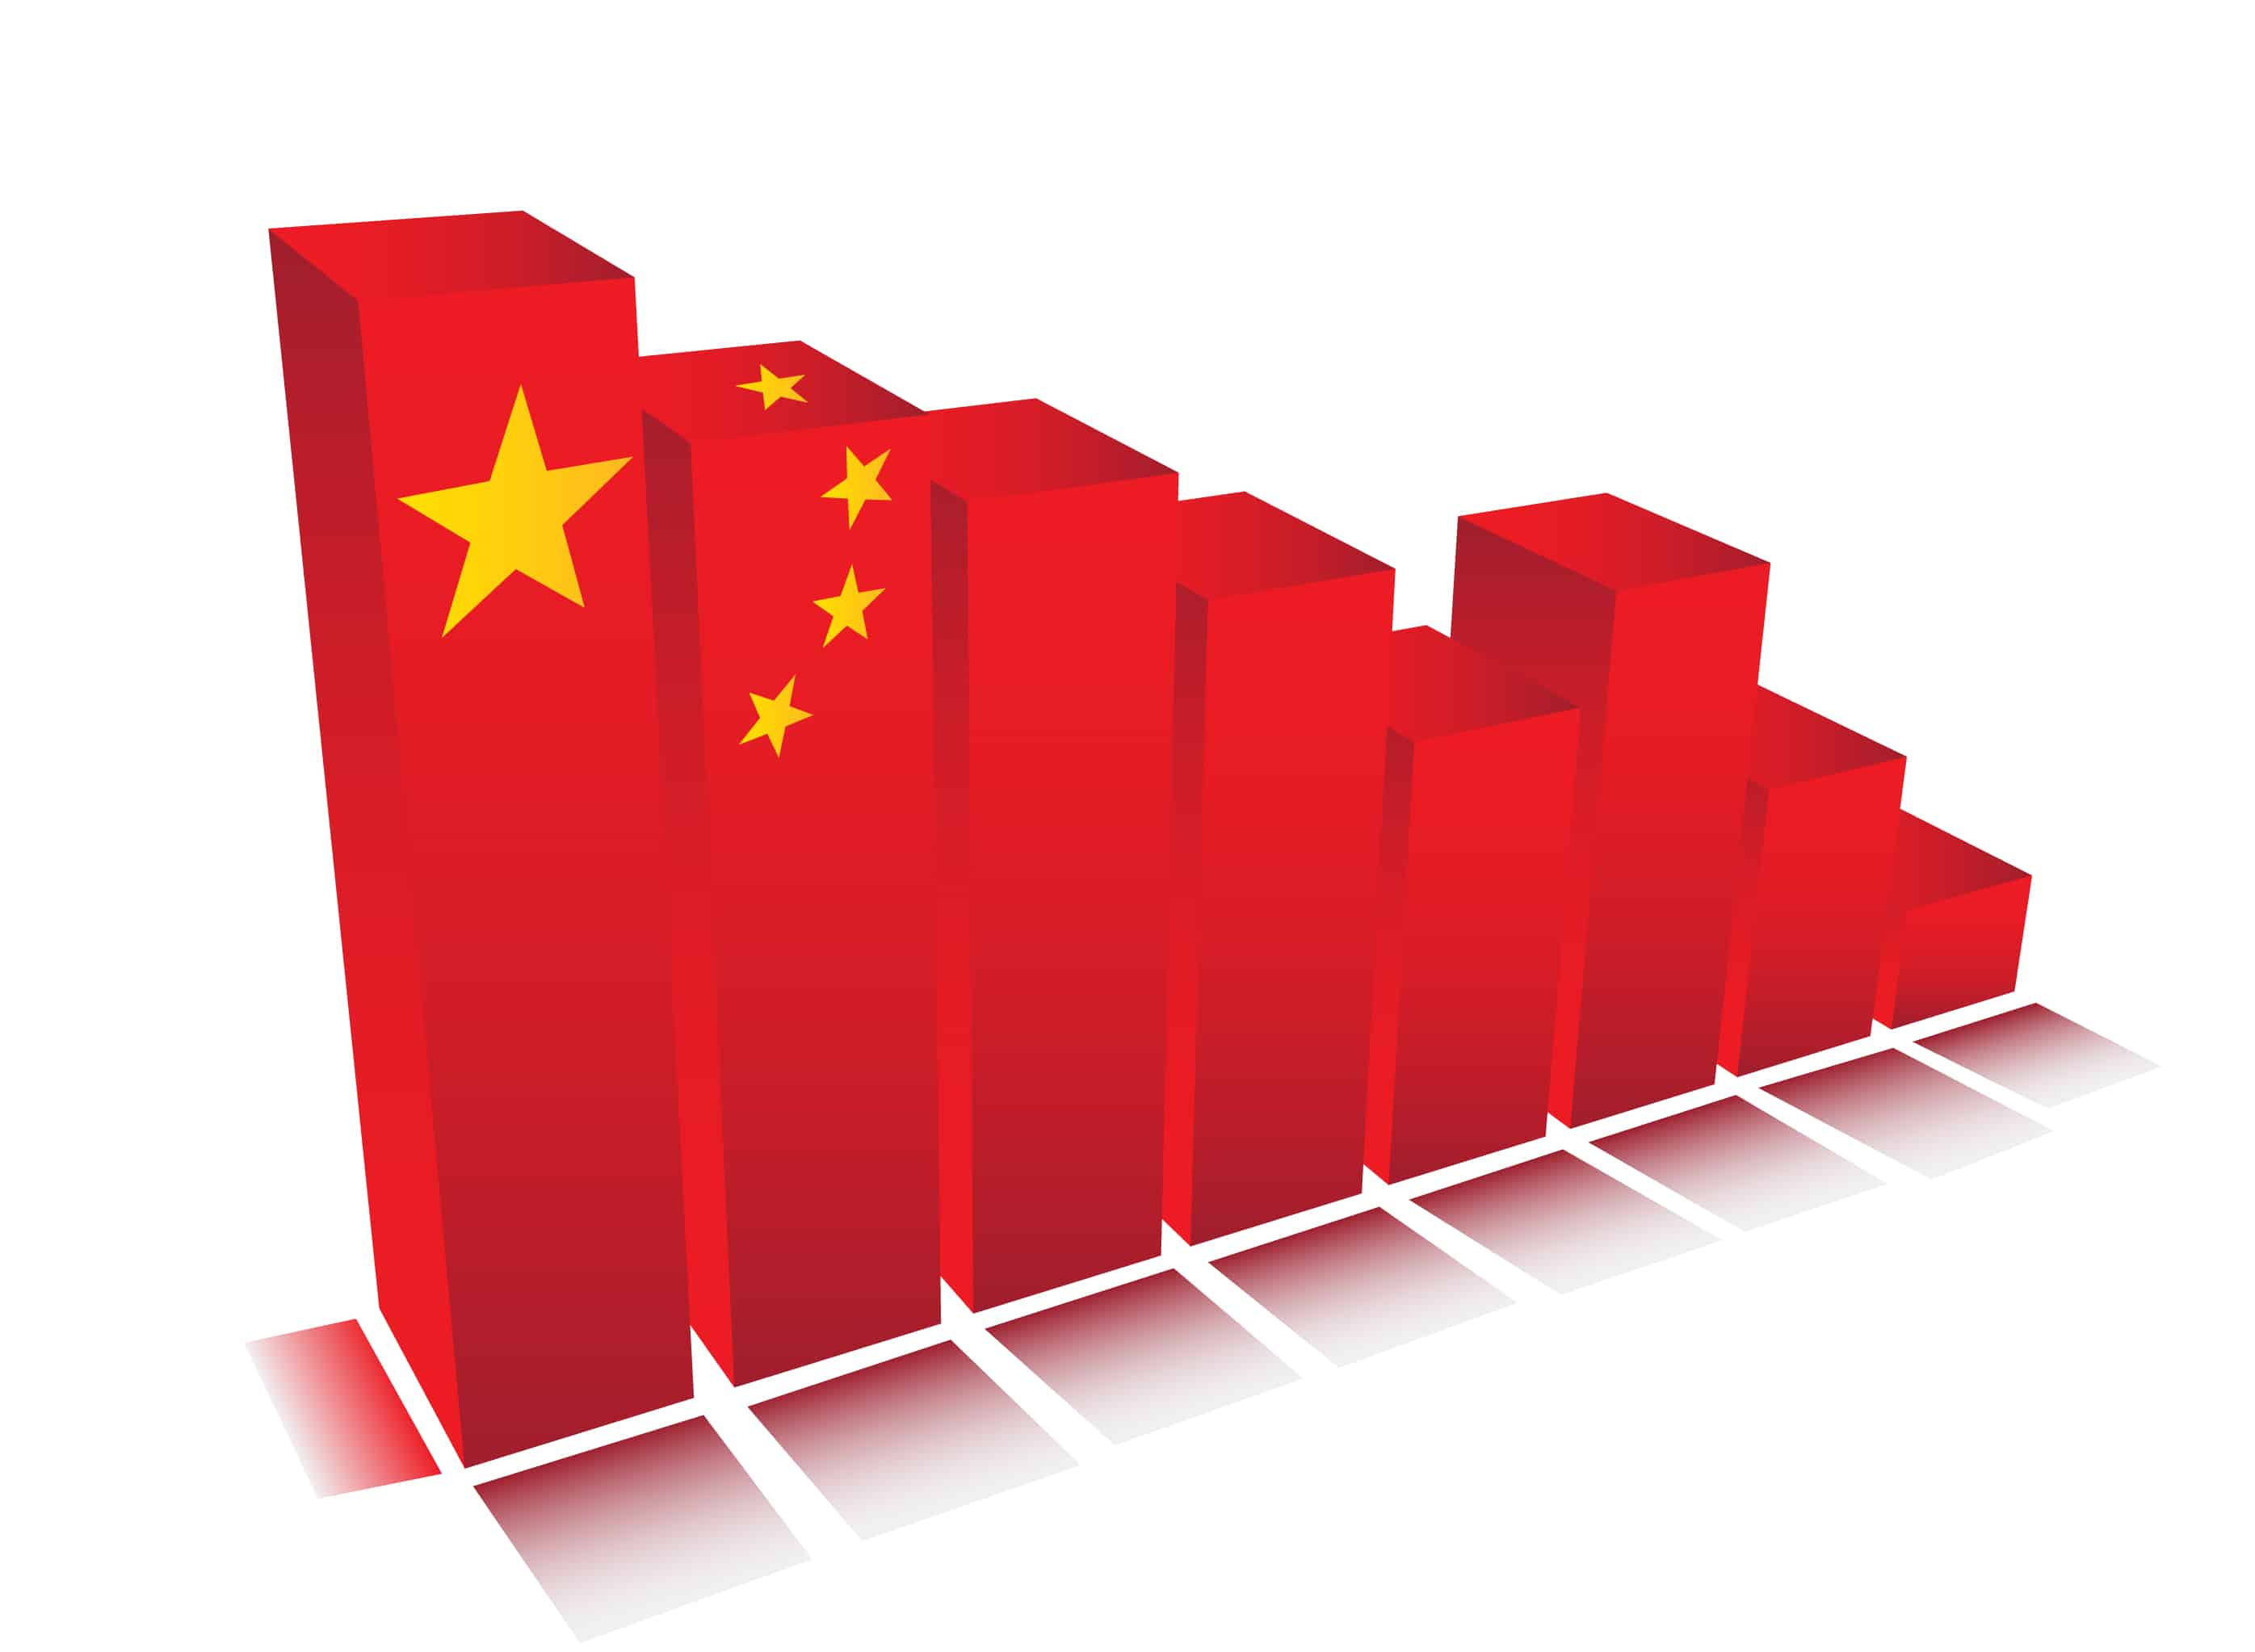 Beijing Policy Support Not Helping China's Growth: Growth Slow At 6.2%